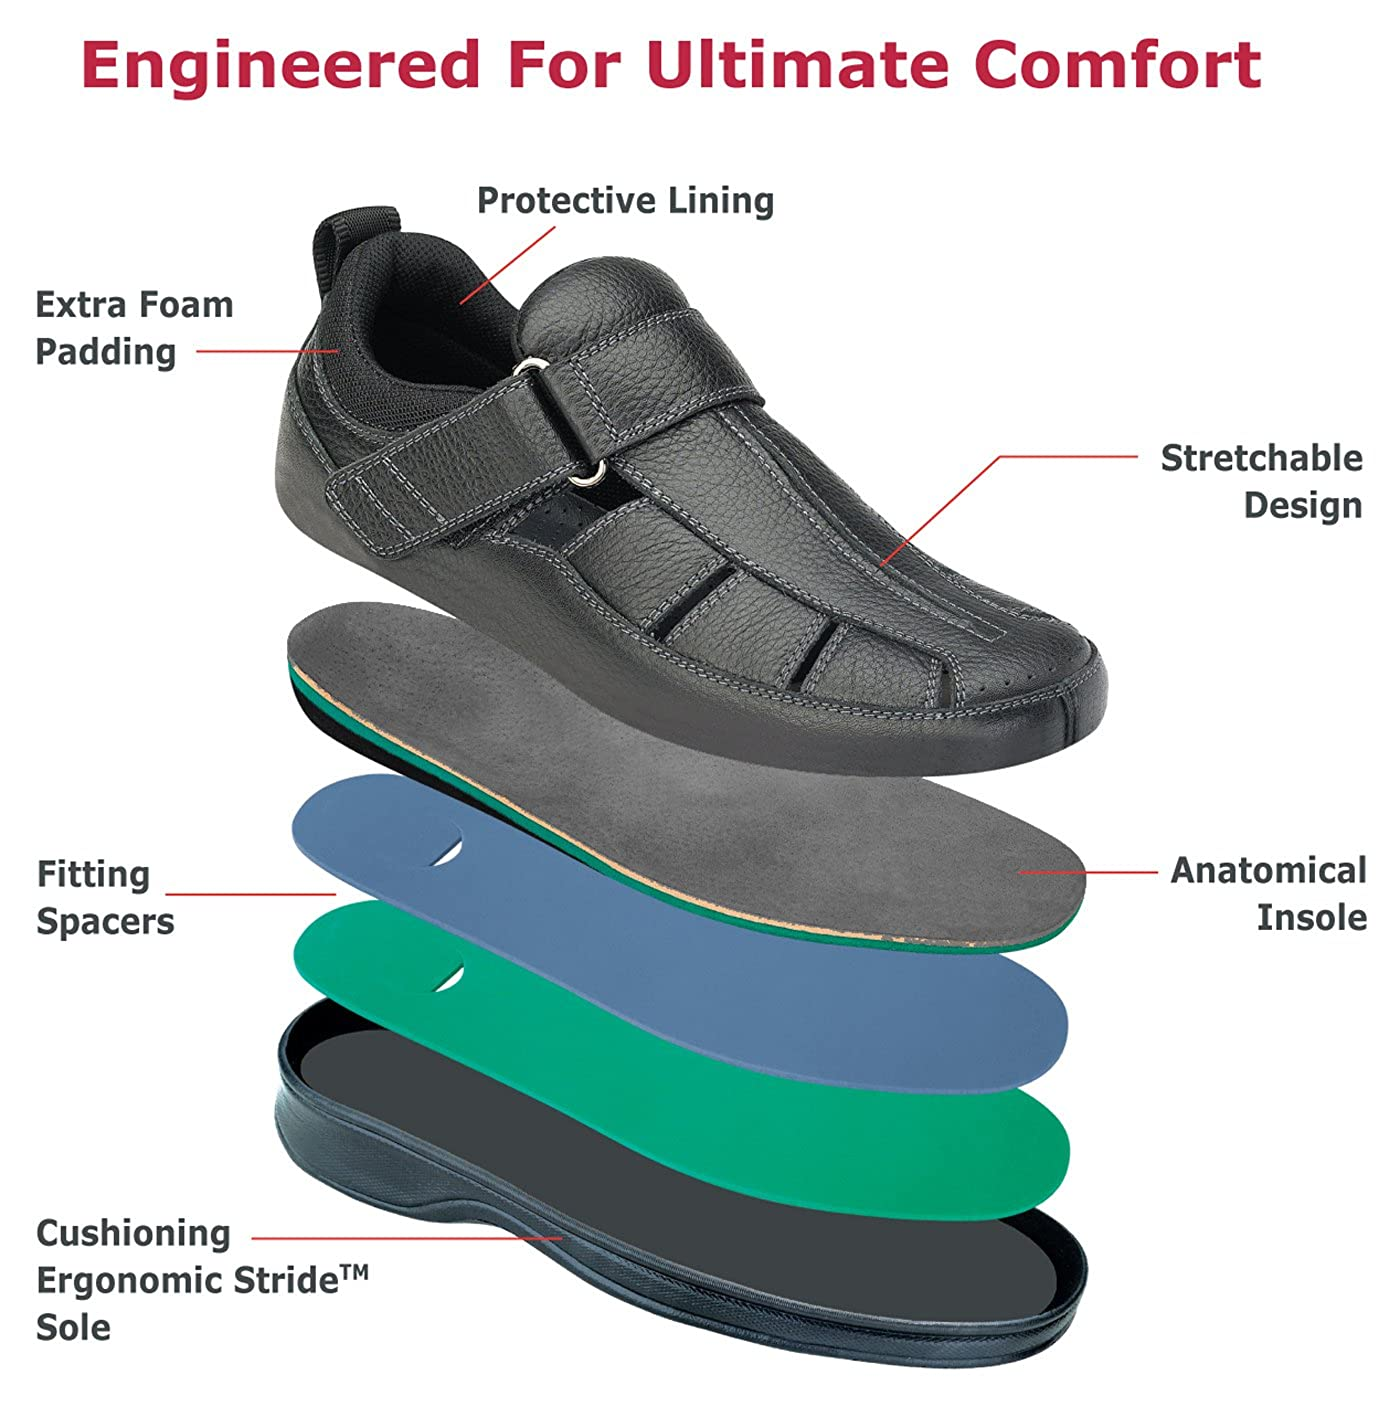 bcb2c3332a5f Amazon.com  Orthofeet Melbourne Comfortable Arch Support Orthopedic Diabetic  Depth Men s Fisherman Sandals  Shoes